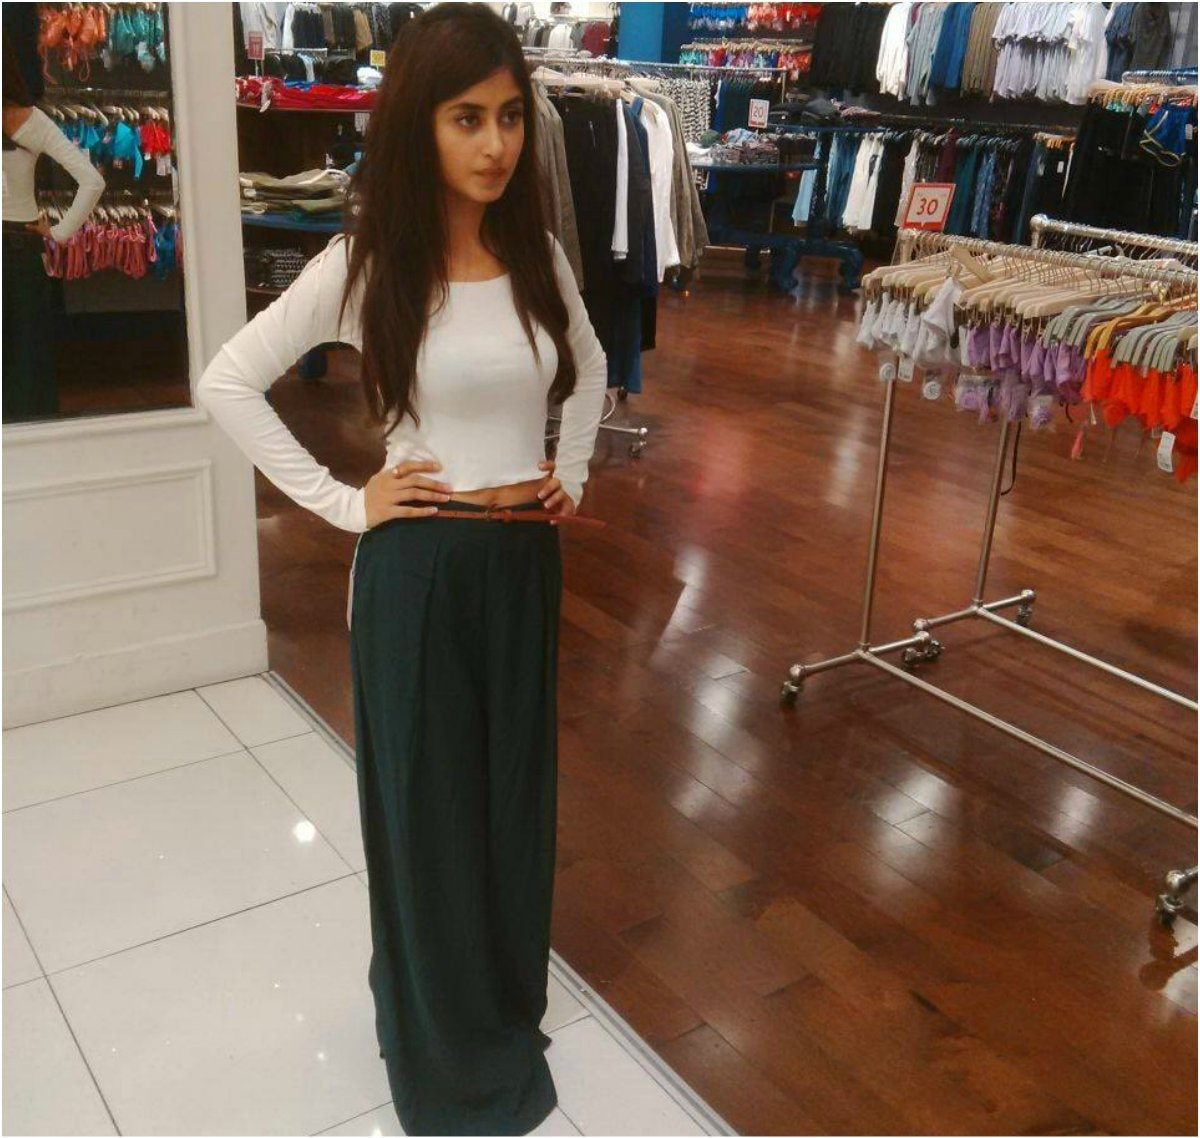 Ali dares to bare just a hint of her midriff in Dubai —Photo courtesy: Rao Ali Khan